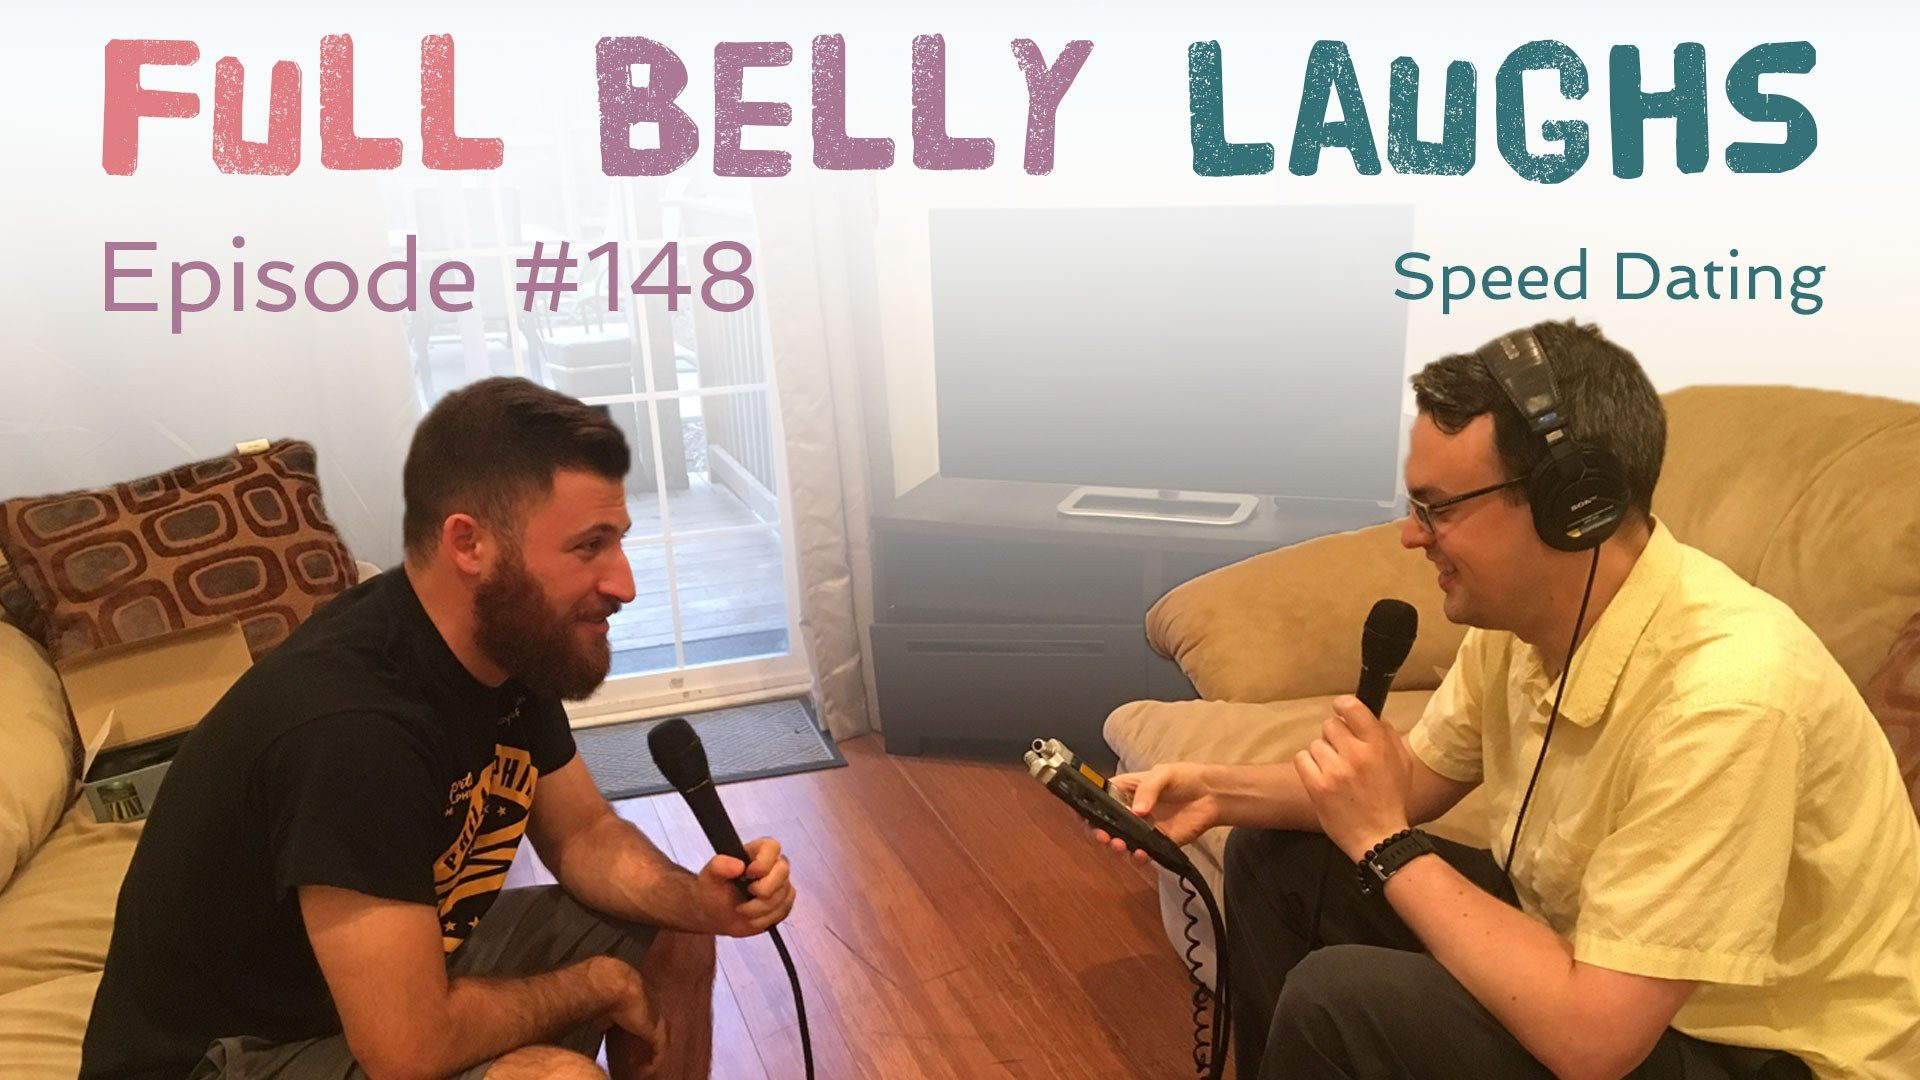 full belly laughs podcast episode 148 speed dating with luke cucurullo audio artwork